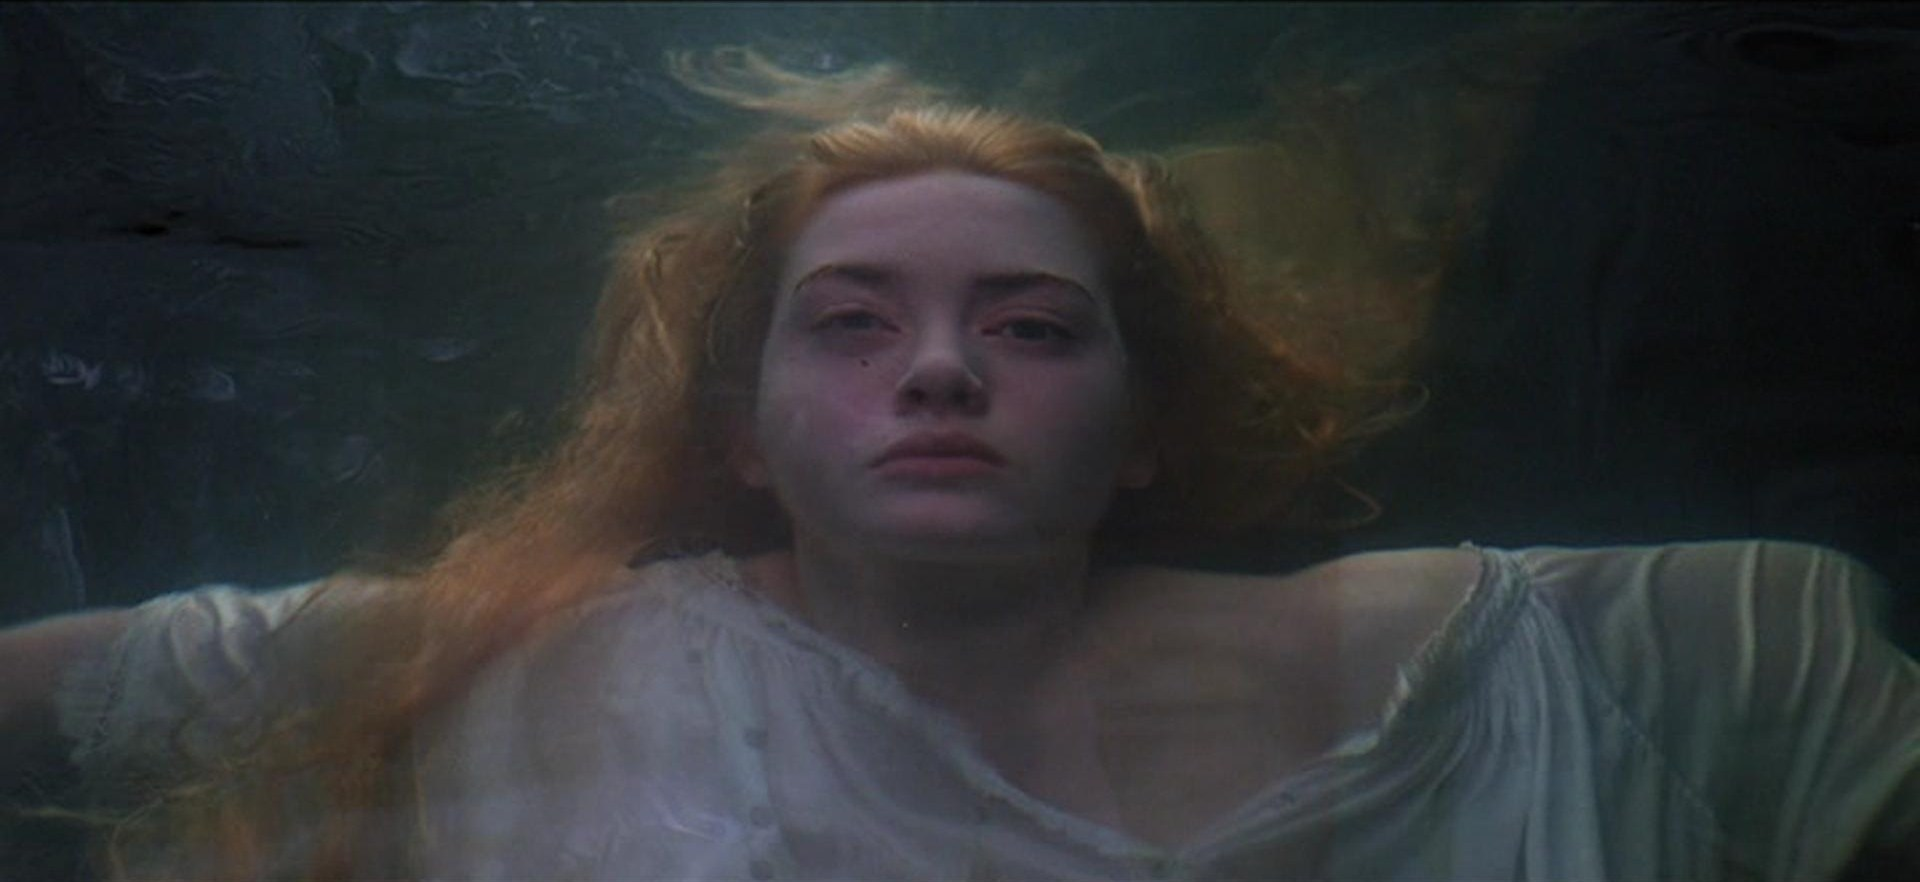 hamlet ophelias madness essay Pregnant with madness— ophelia's struggle and madness in hamlet ophelia's madness displays her inner conflicts and hamlet and ophelia's madness brings.